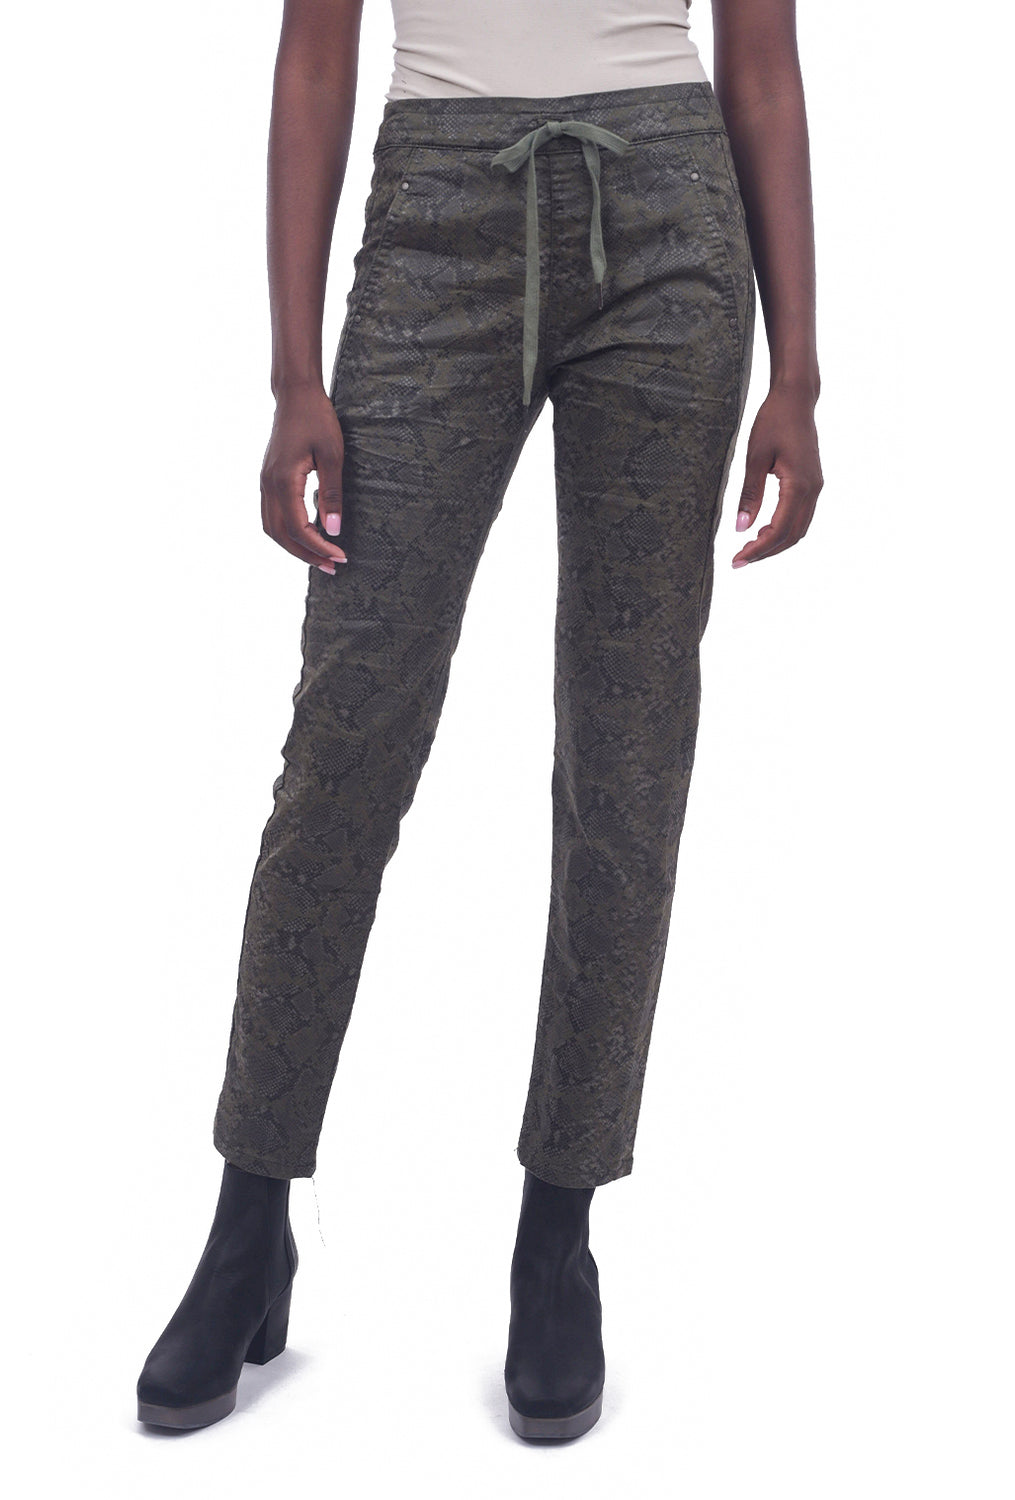 Alembika Bika Favorite Shiny Skinnies, Green Python